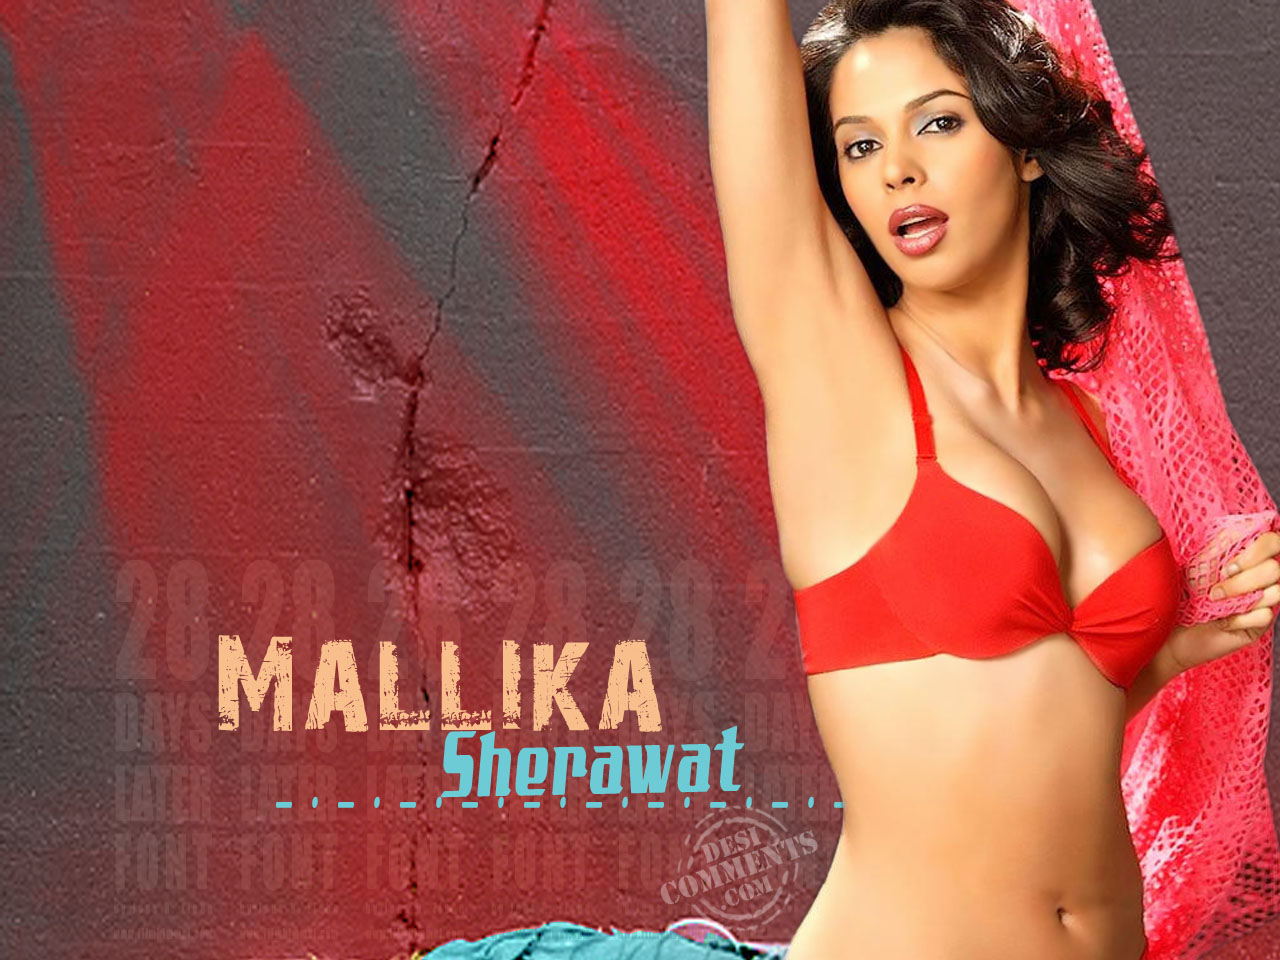 malika sherawat hot pics: wallpapers of mallika sherawat